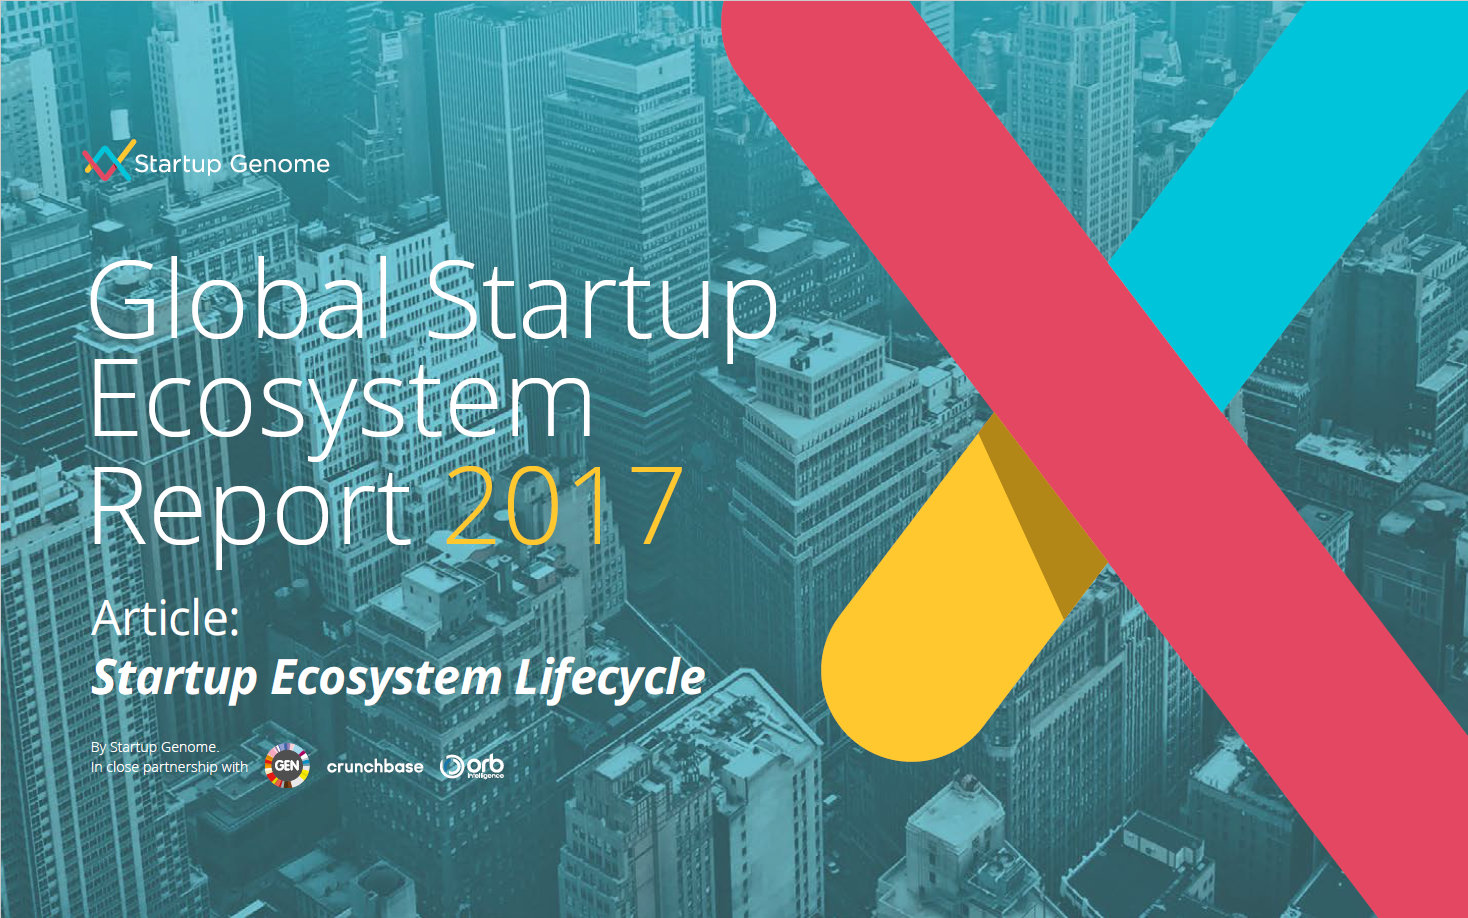 Startup Ecosystem Lifecycle Model Explained